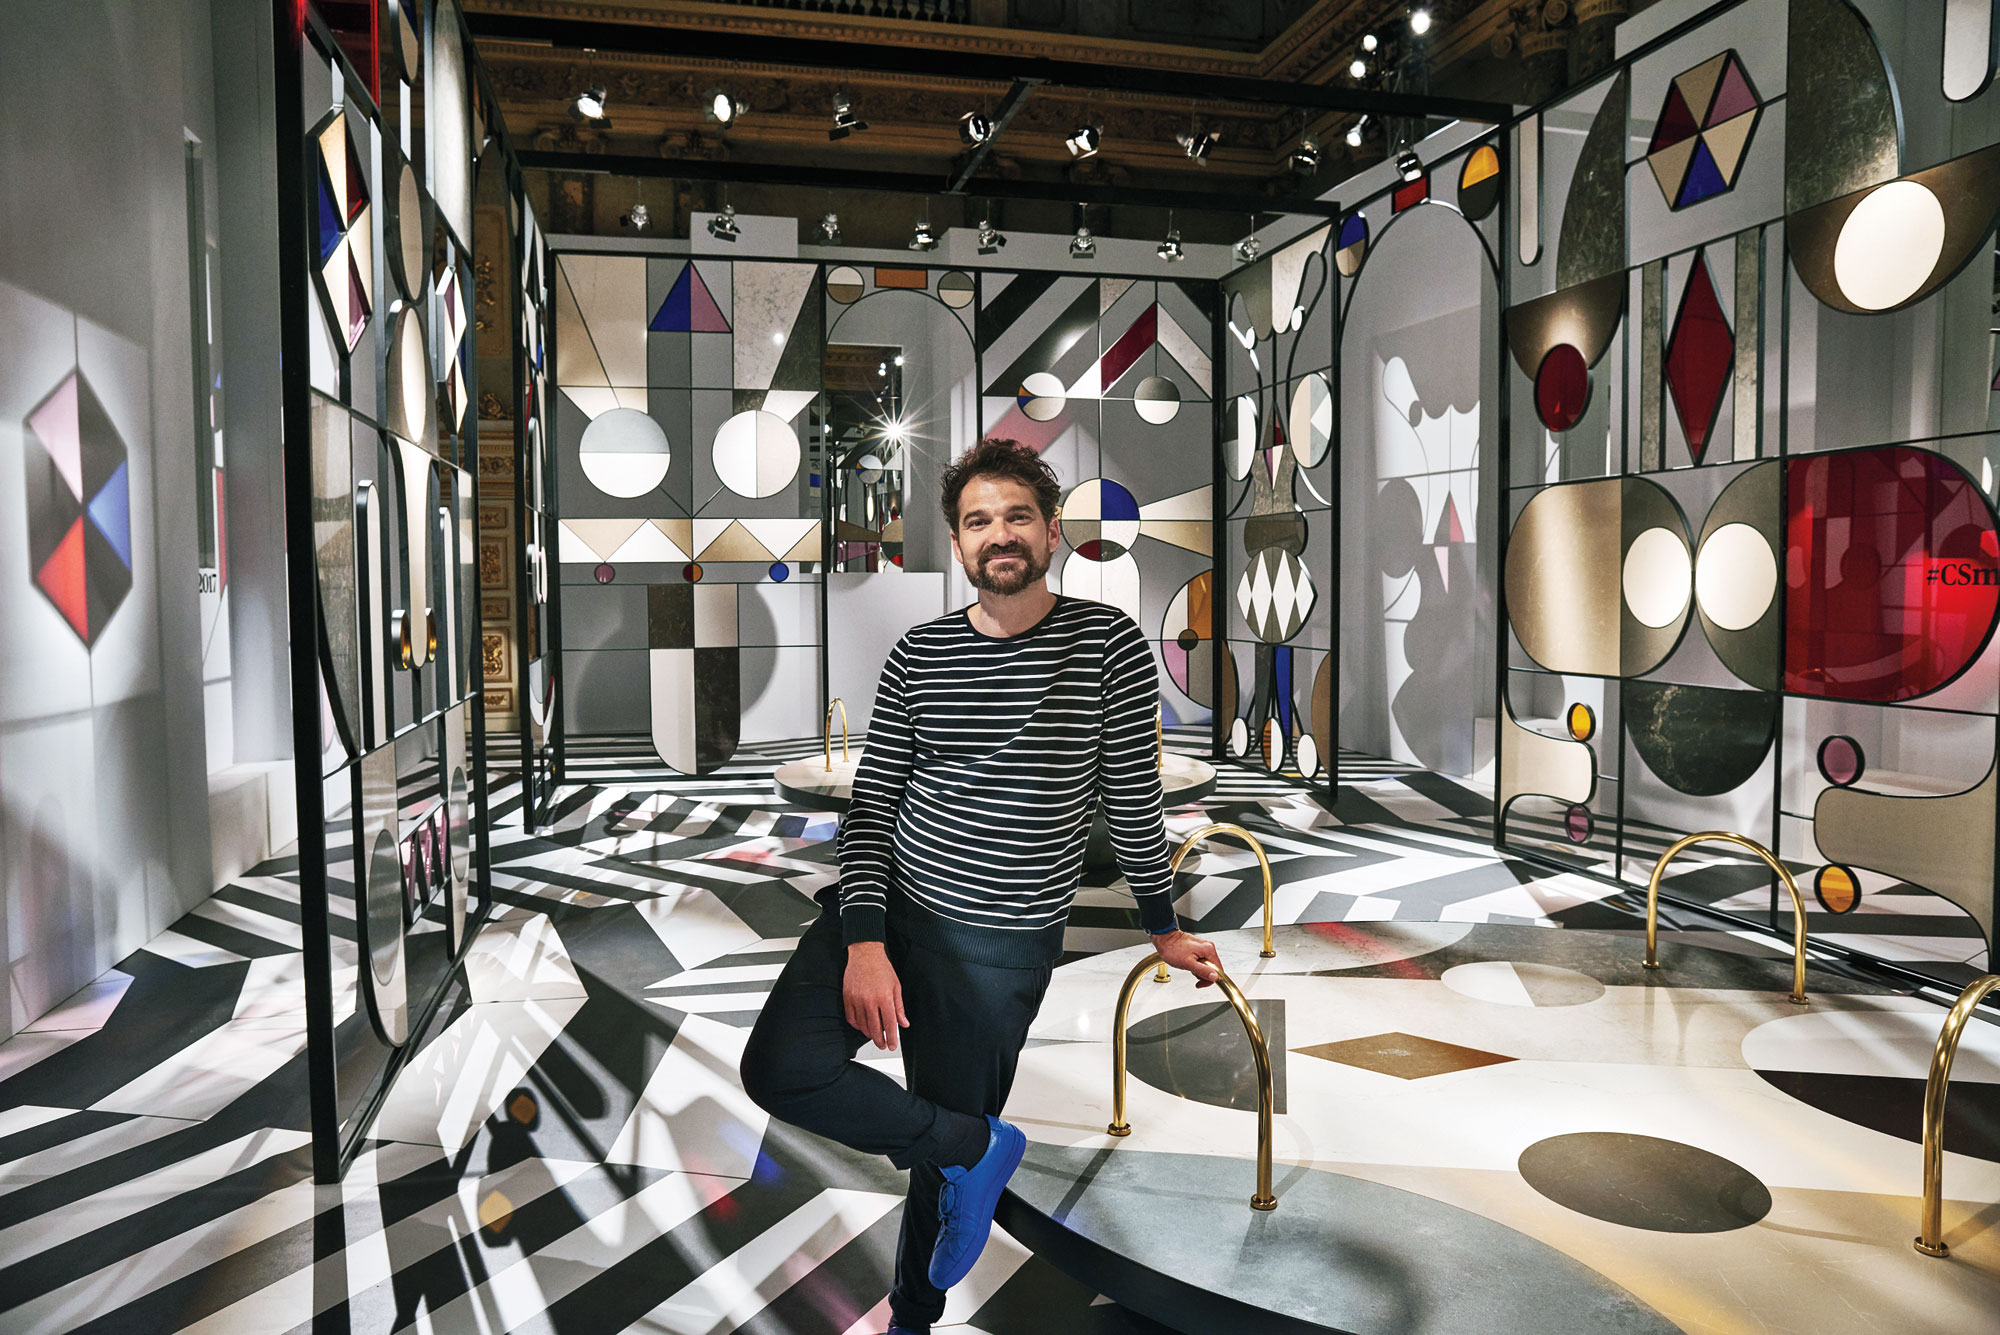 jaime hayon creates a kaleidoscopic world with his pencil. Black Bedroom Furniture Sets. Home Design Ideas